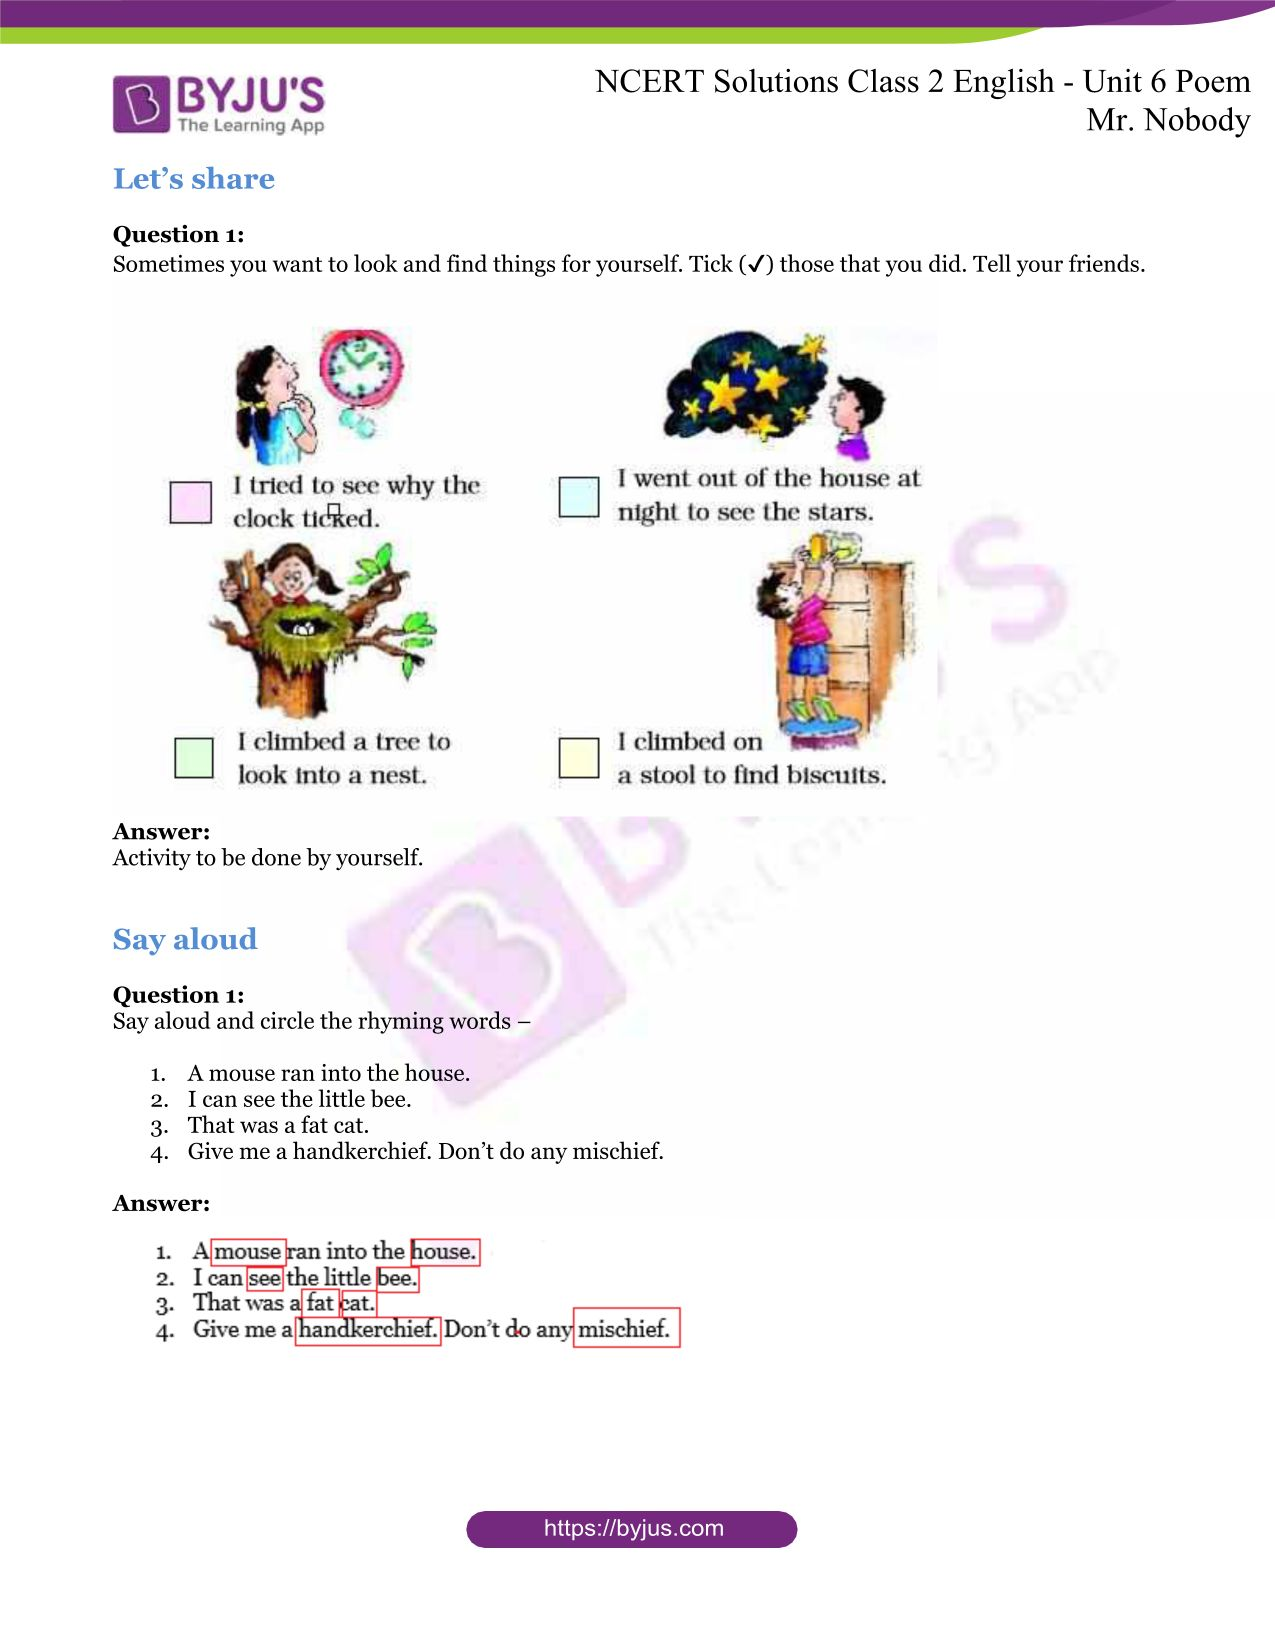 NCERT Solutions for Class 2 English Unit 6 Poem - Mr ...